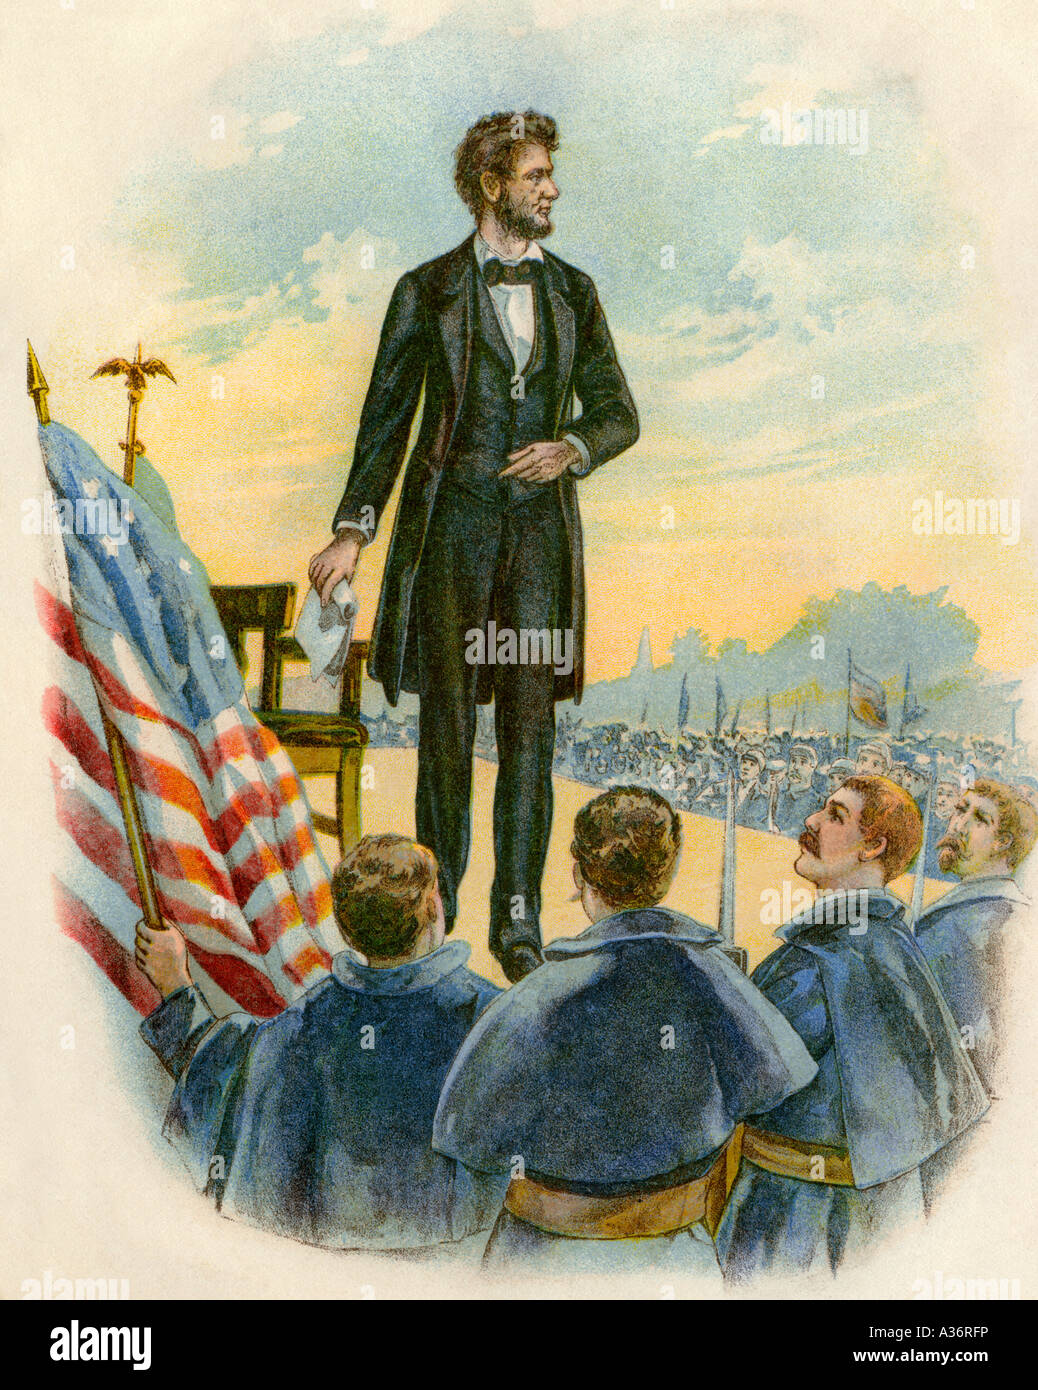 President Abraham Lincoln delivering the Gettysburg Address on the battlefield during the Civil War 1863 Stock Photo